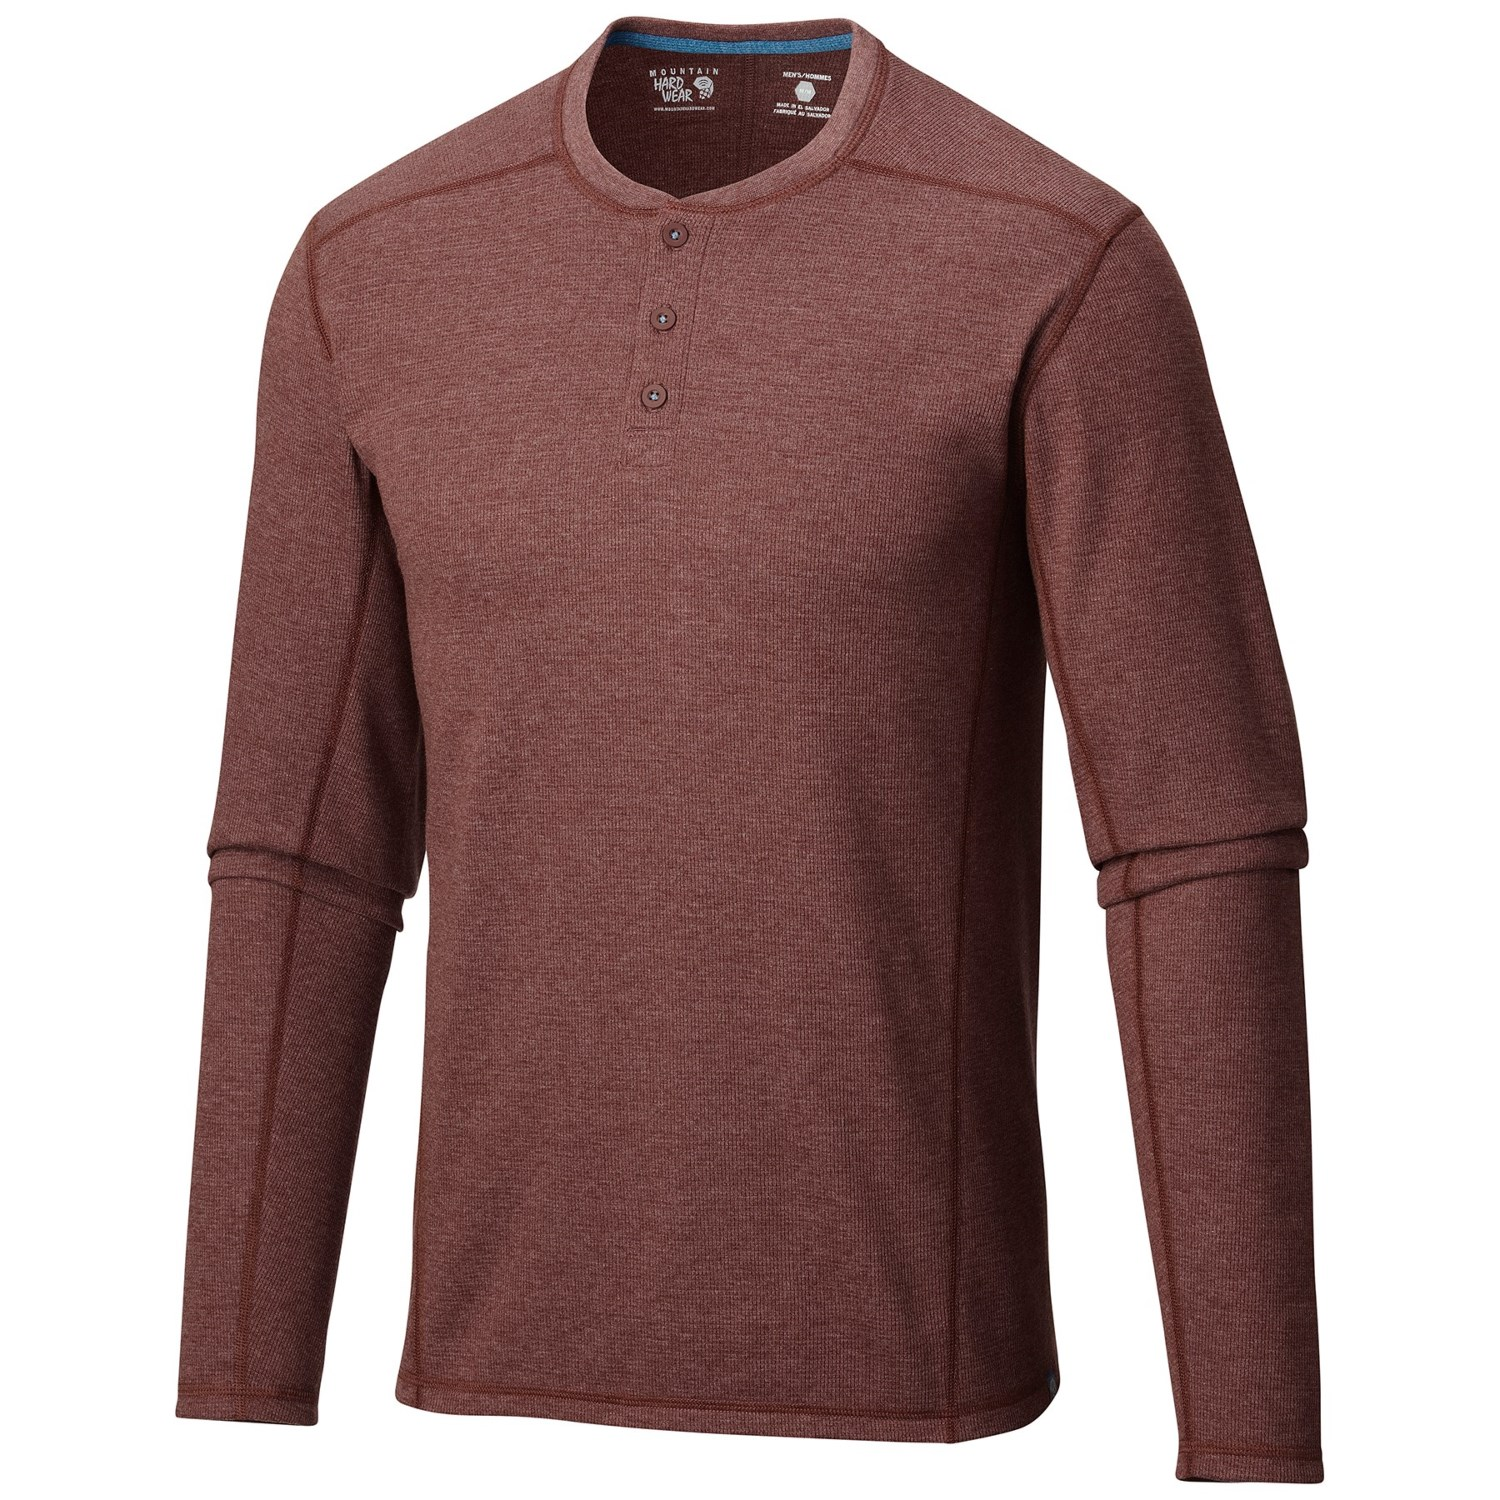 Mountain hardwear trekkin thermal henley shirt for men for Men s thermal henley long sleeve shirts